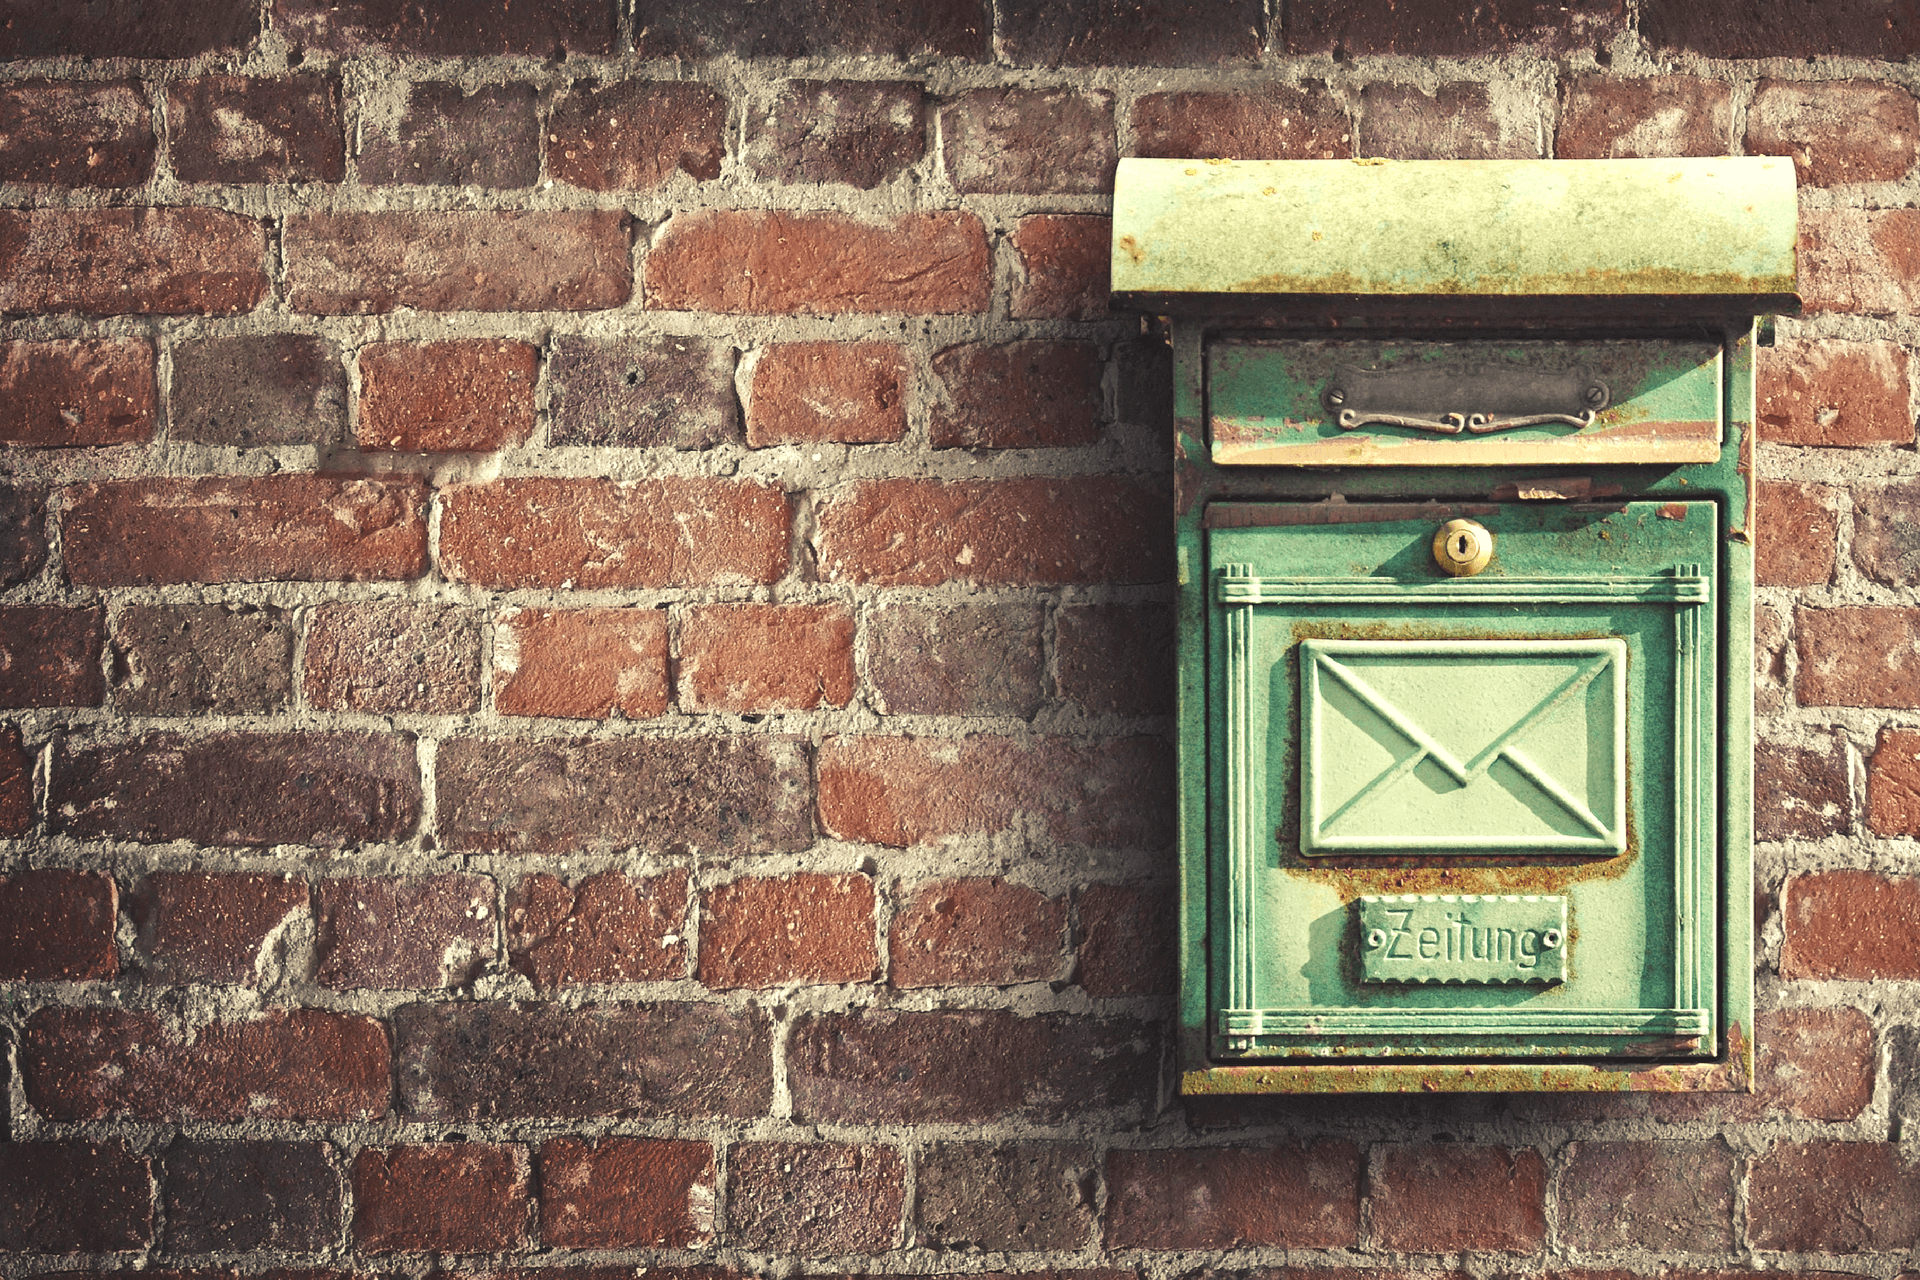 This image displays an email box and portrays the relevance that strategic marketing has for nonprofit fundraising